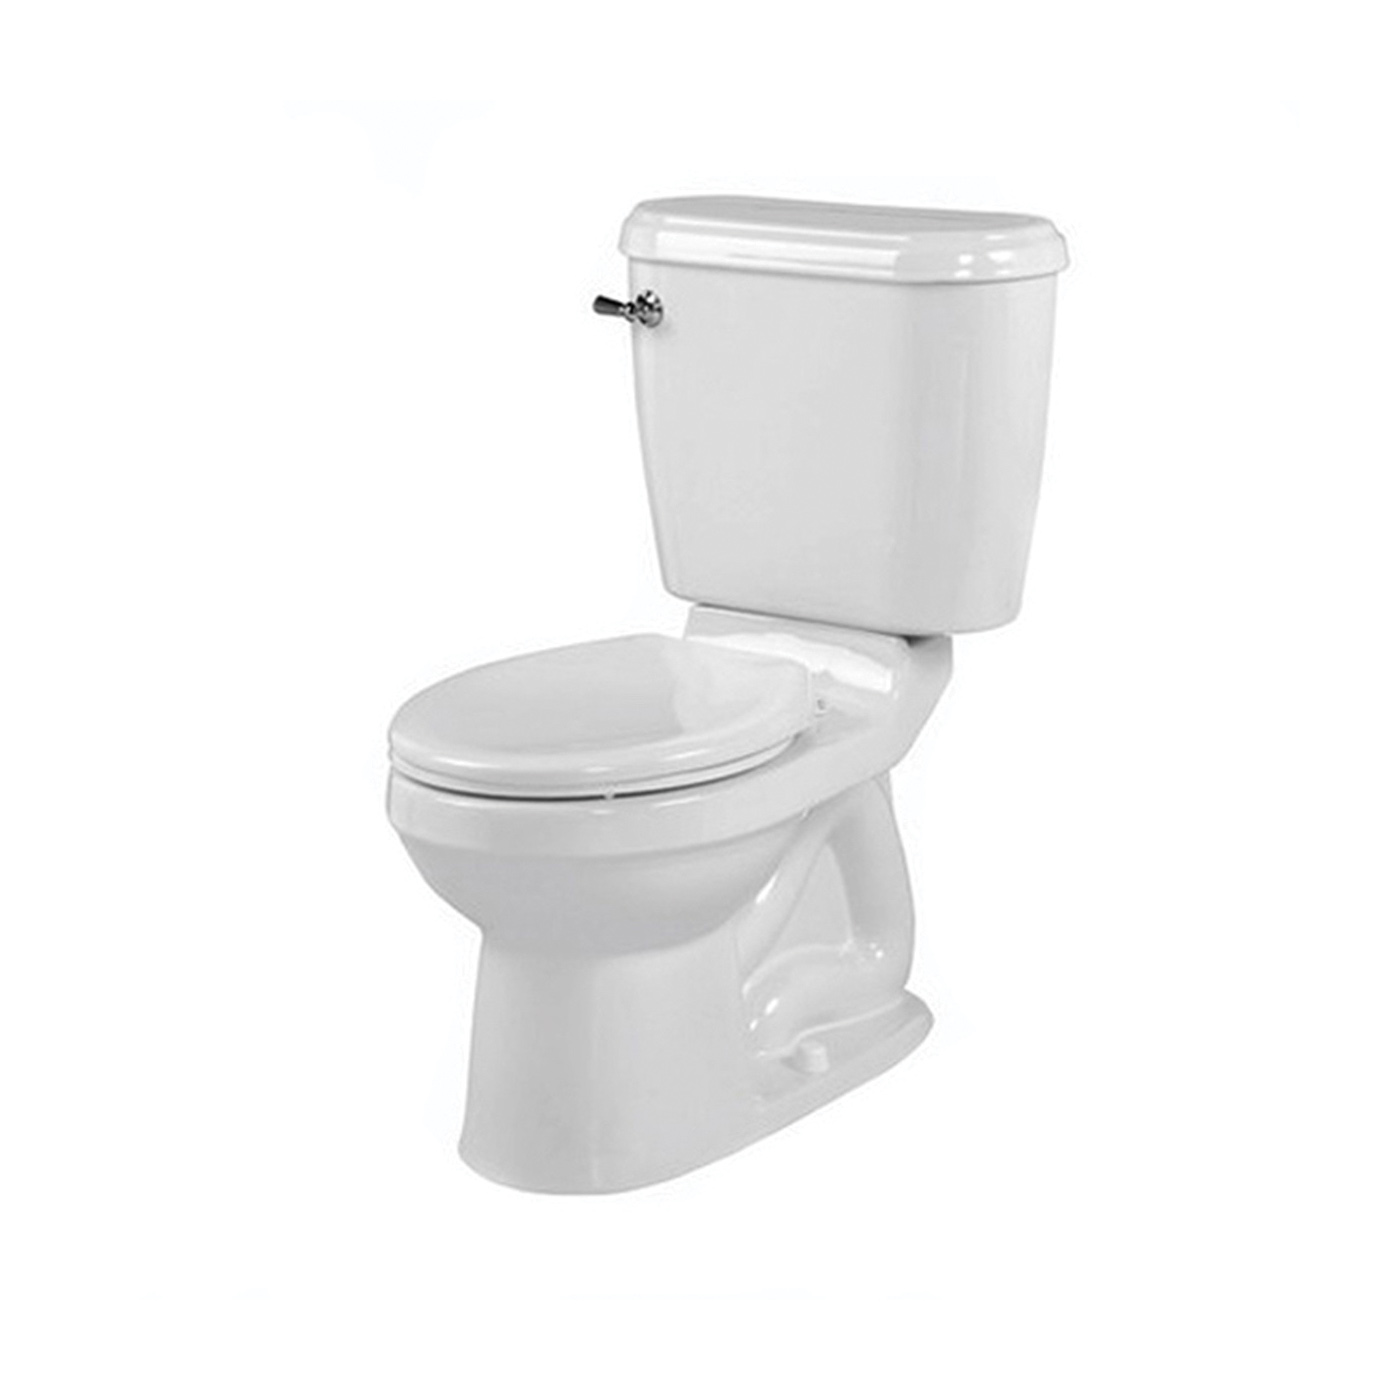 American Standard 3225.016.020 Champion® 4 Toilet Bowl, Elongated, 16-1/2 in, 2-3/8 in